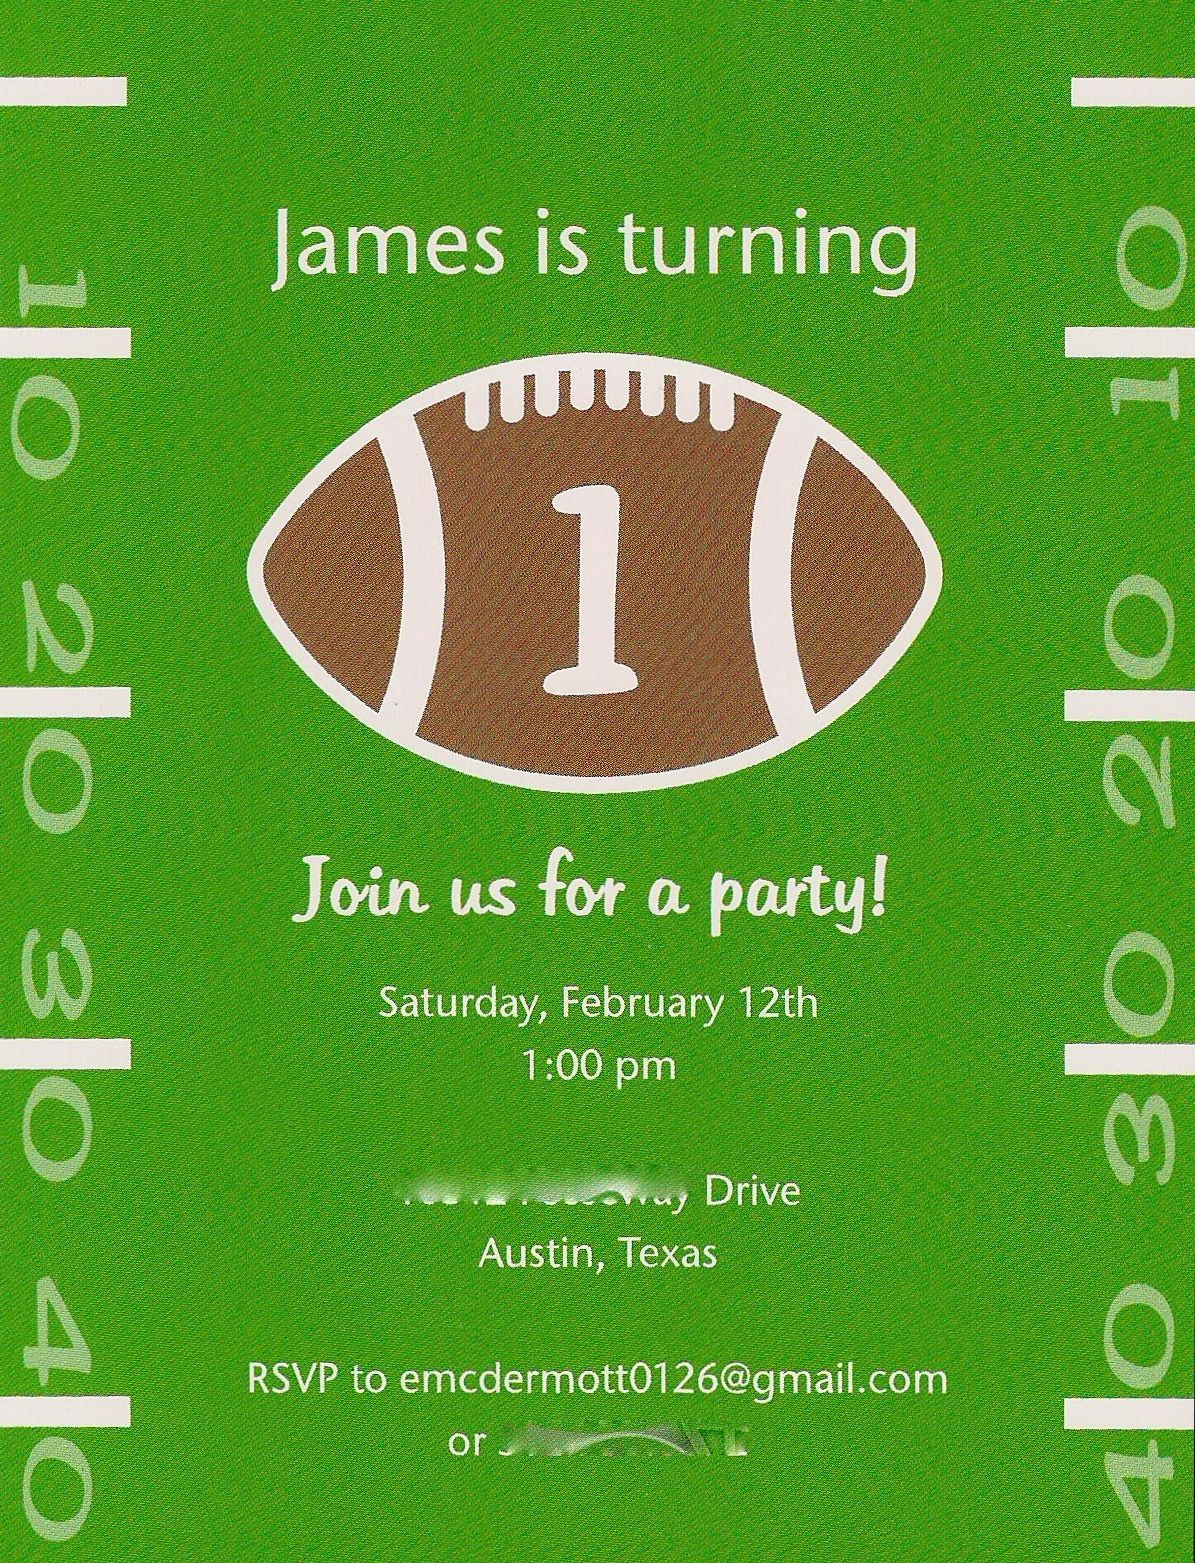 Best ideas about Football Birthday Party Invitations . Save or Pin Baby McDermott First Birthday Party The Details Now.